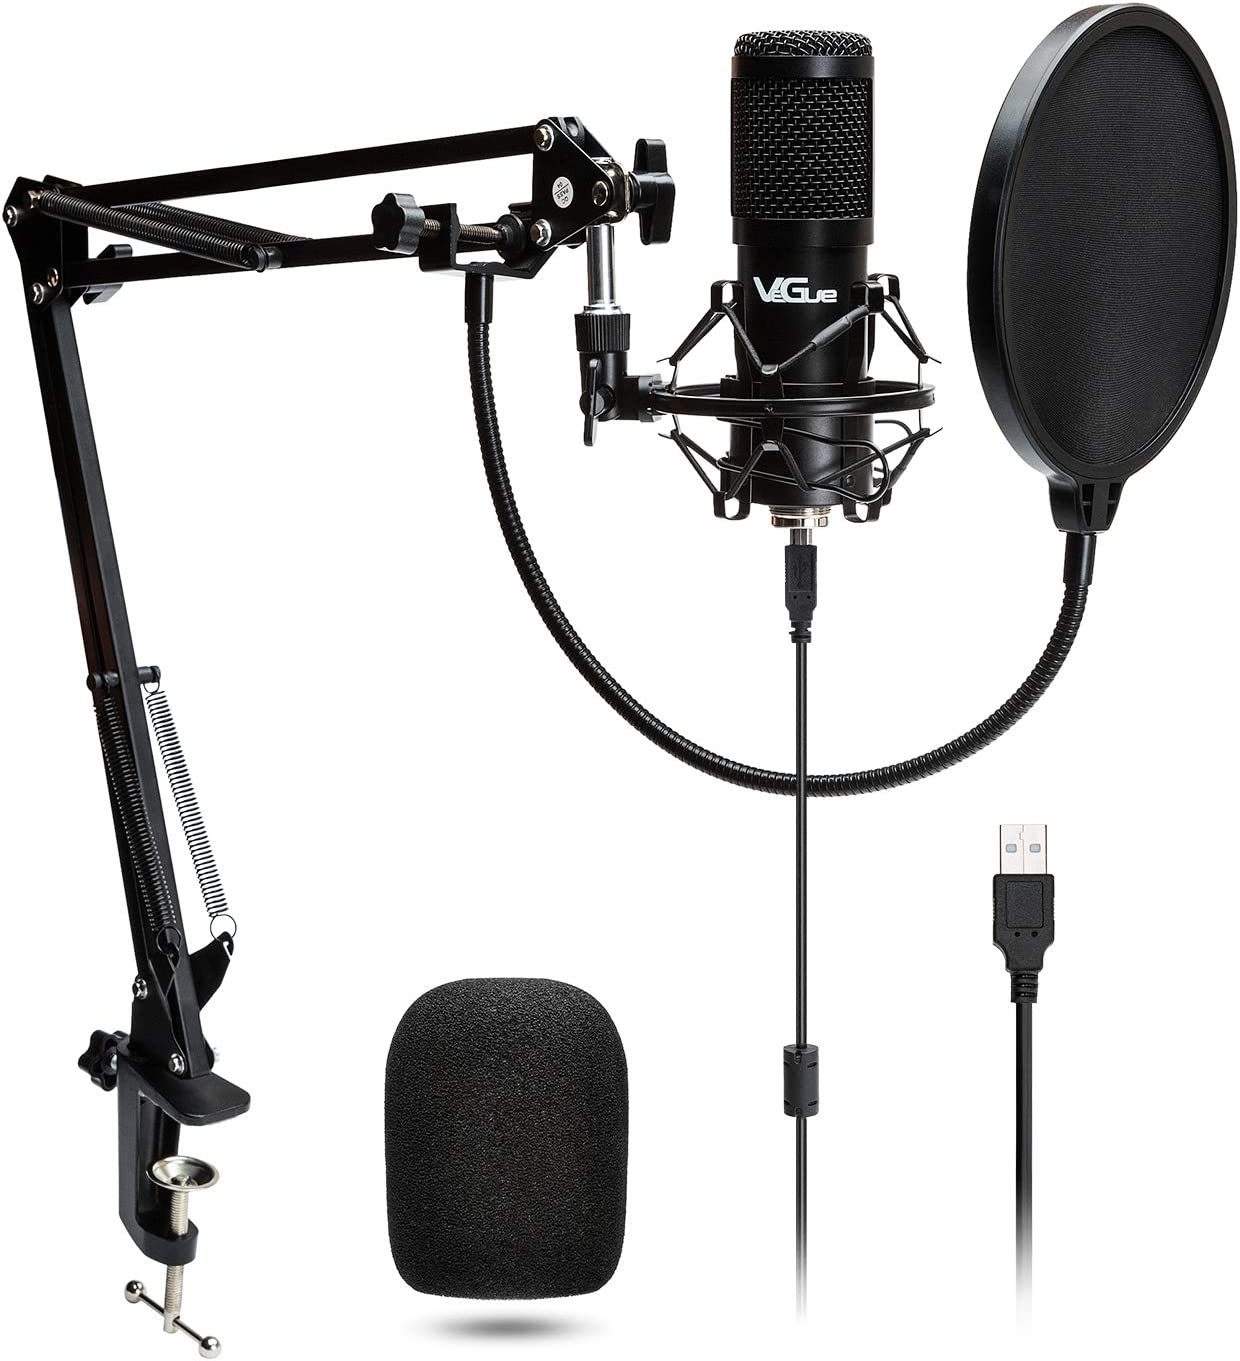 USB Microphone for Computer, Professional PC Microphone with 16 mm Diaphragm, 192KHz/24BIT, Ideal for Singing, Streaming, Podcast, Recording, Gaming, Voice Over